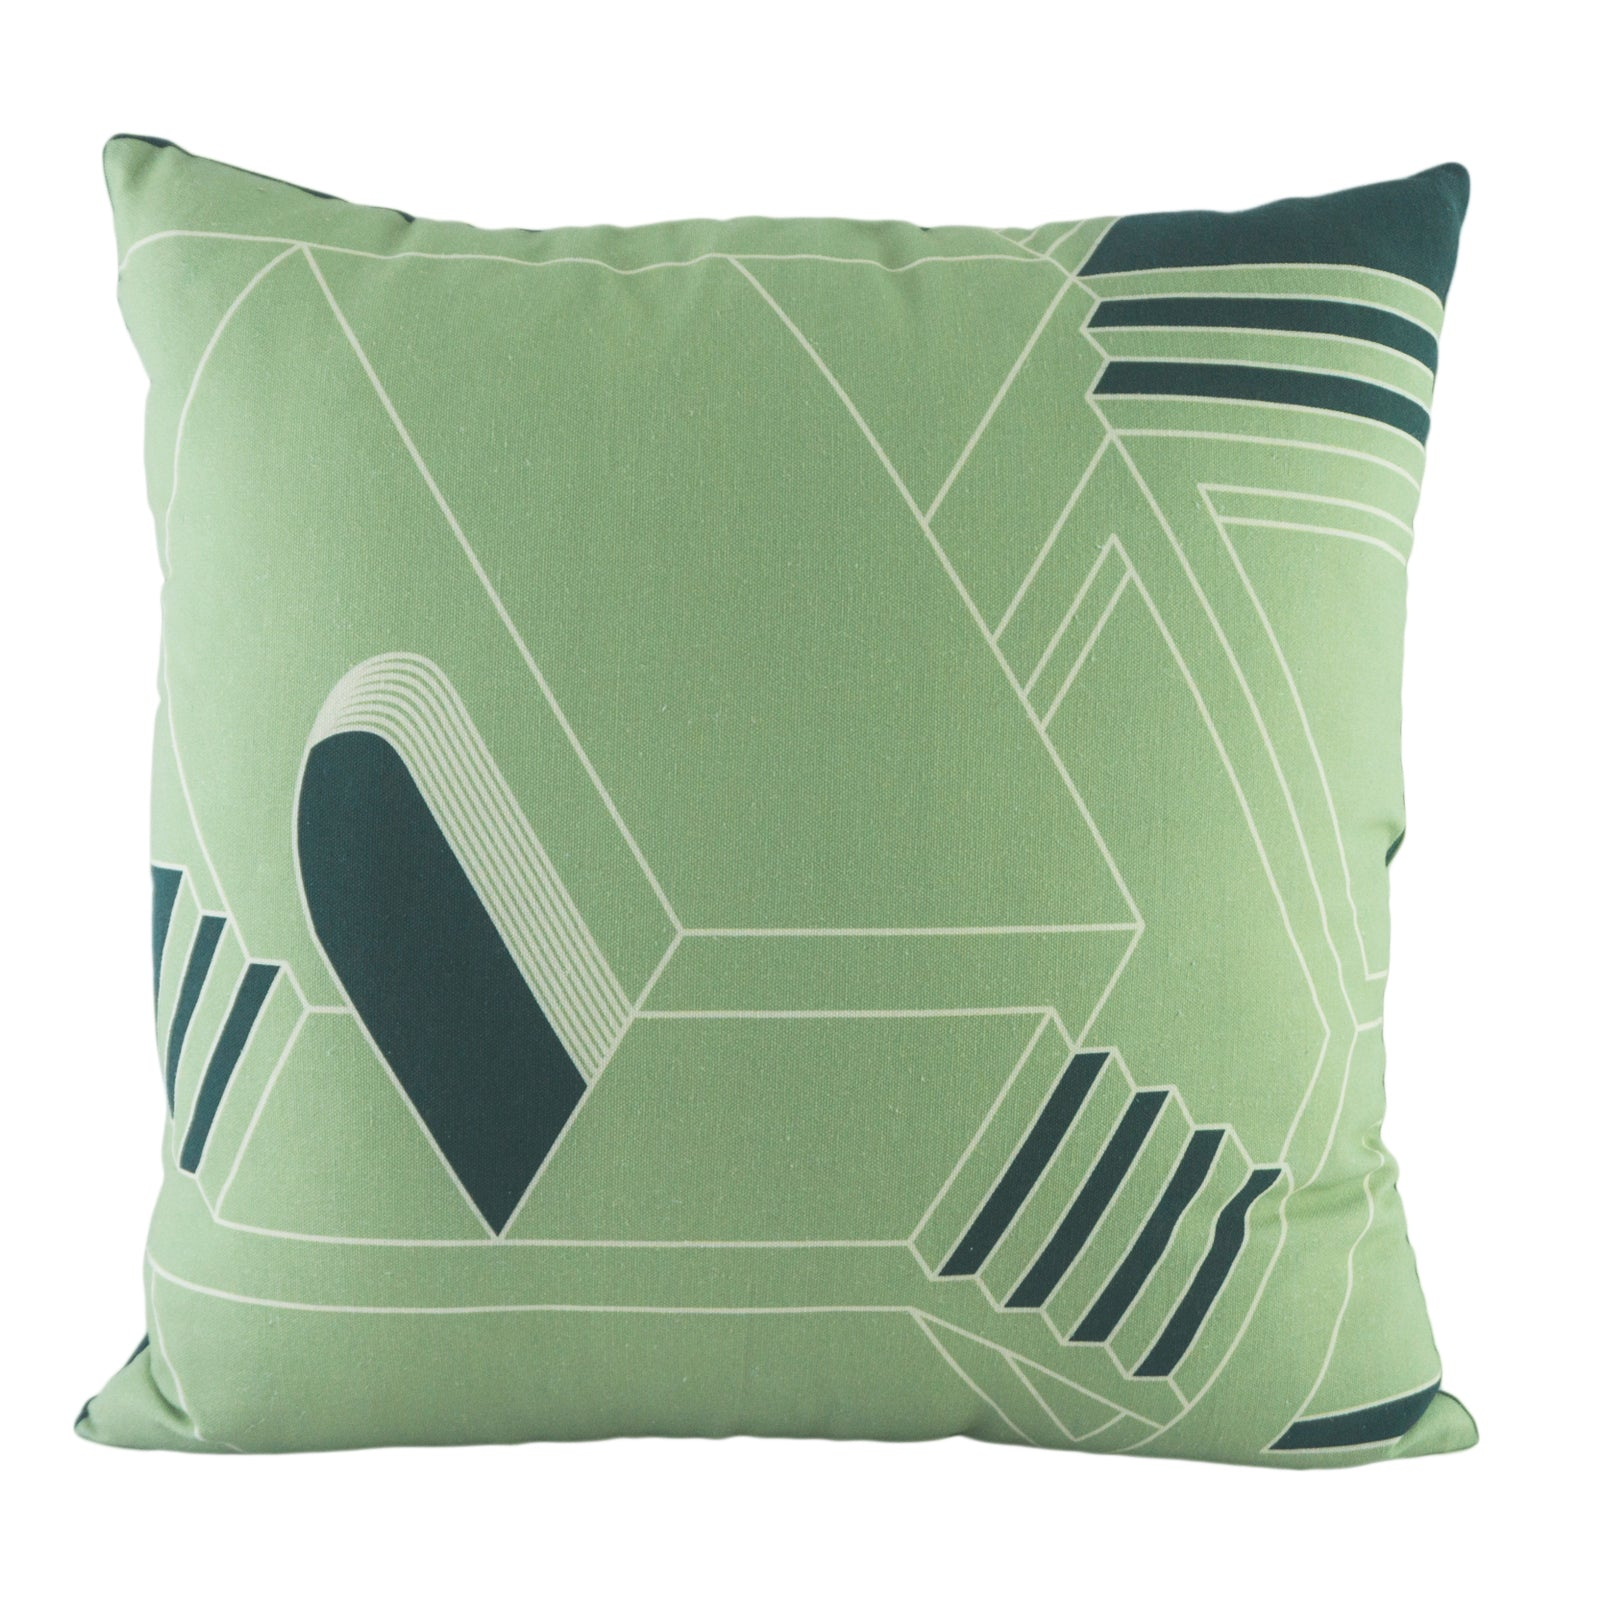 Green Cushion Cover Set. 100% Cotton. Borderline Play